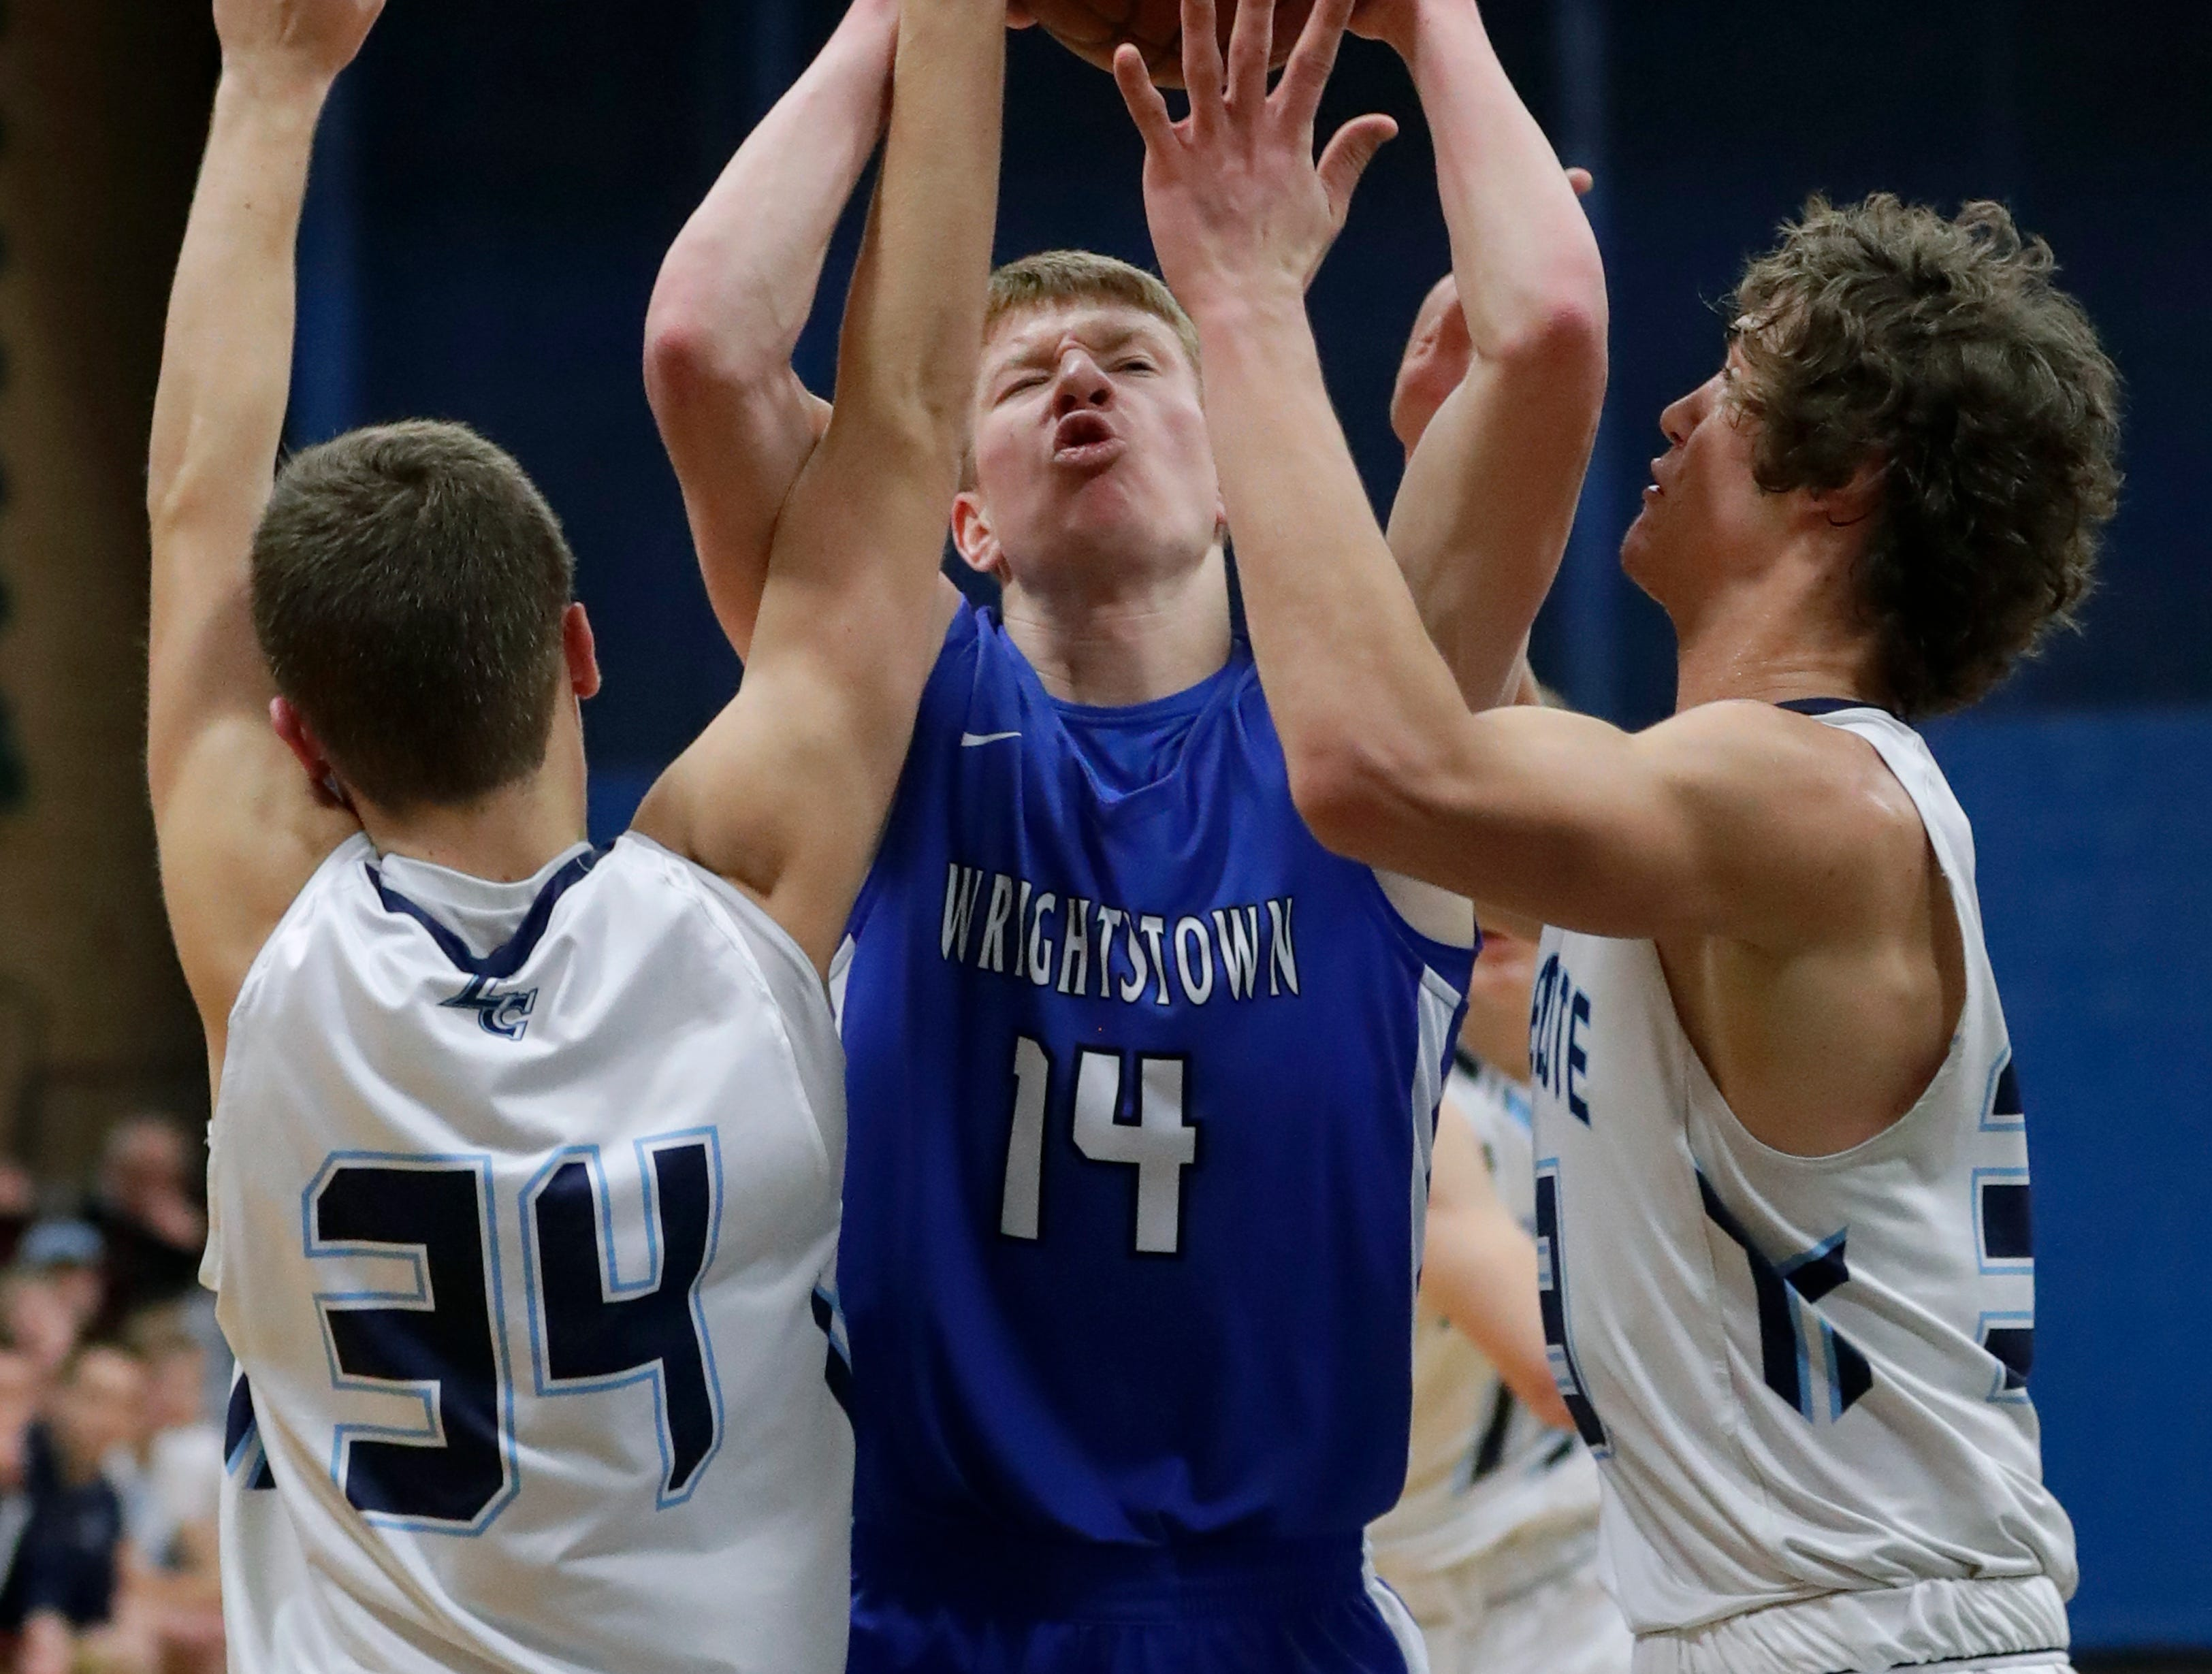 Little Chute High School's Connor Christopherson, left, and Isiah Boe, right, defend against Wrightstown High School's Mayson Hazaert during their boys basketball game Friday, February 1, 2019, in Little Chute, Wis. 